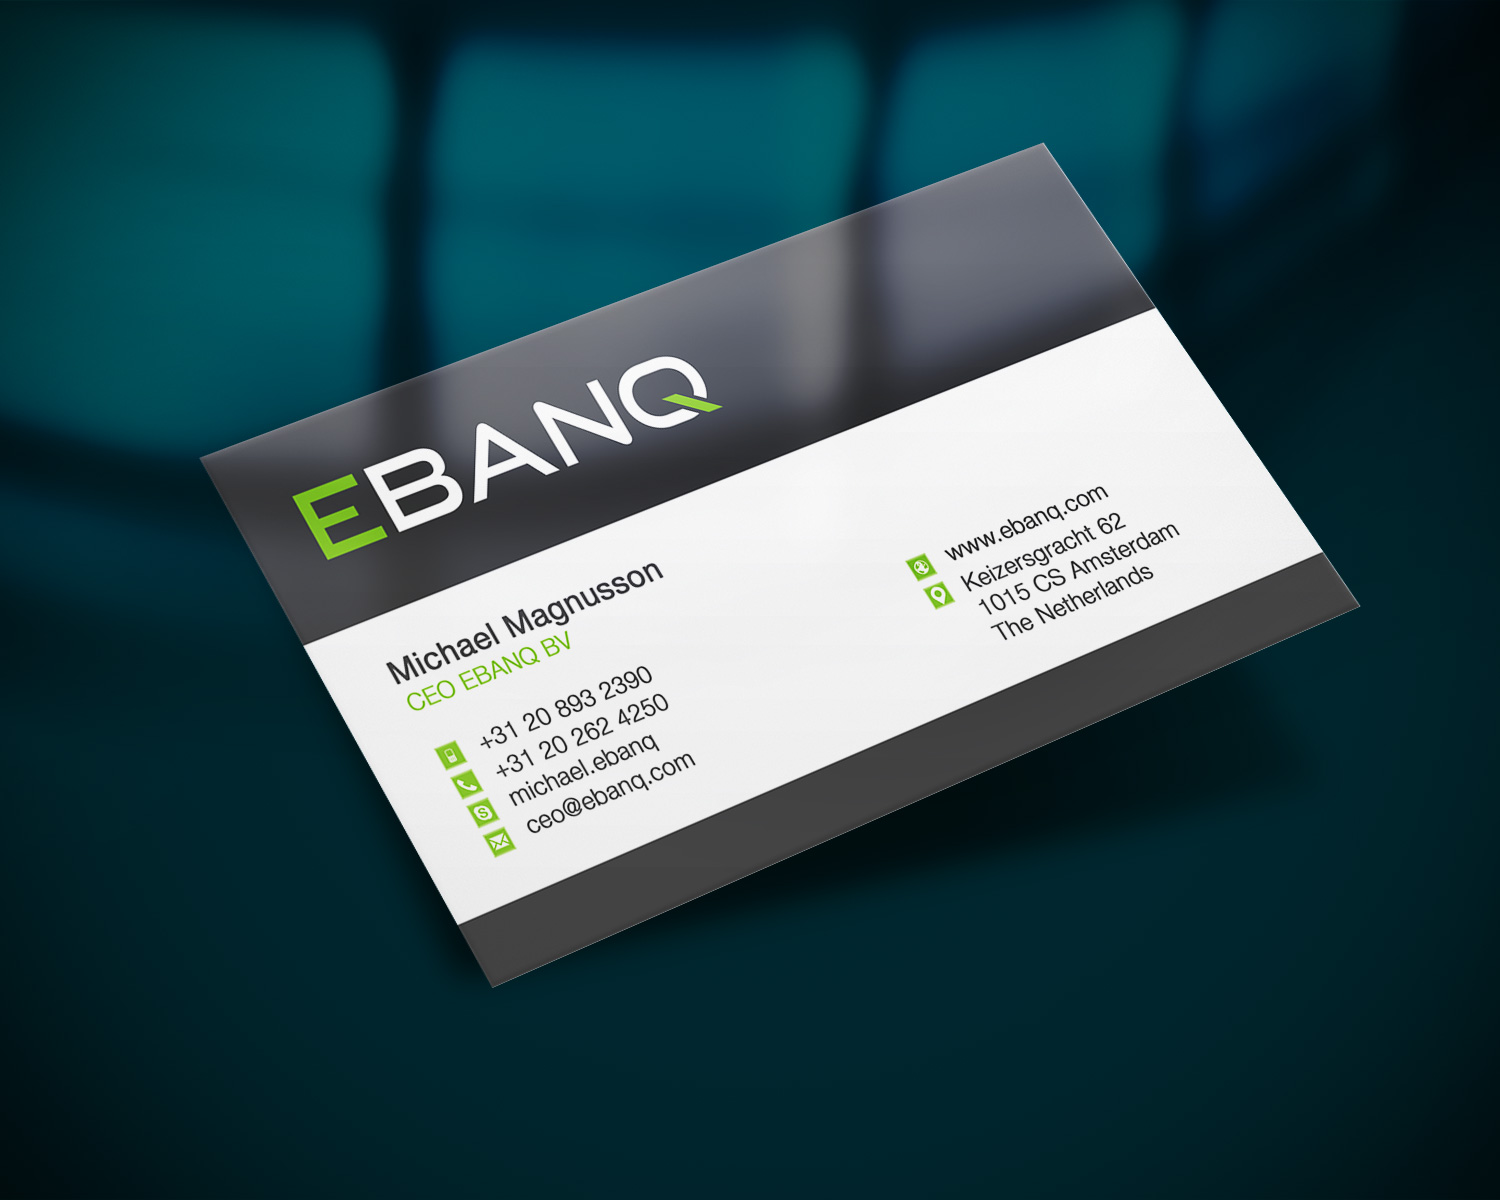 Modern professional financial business card design for ebanq business card design by creation lanka for ebanq fintech sl design 5087342 reheart Image collections